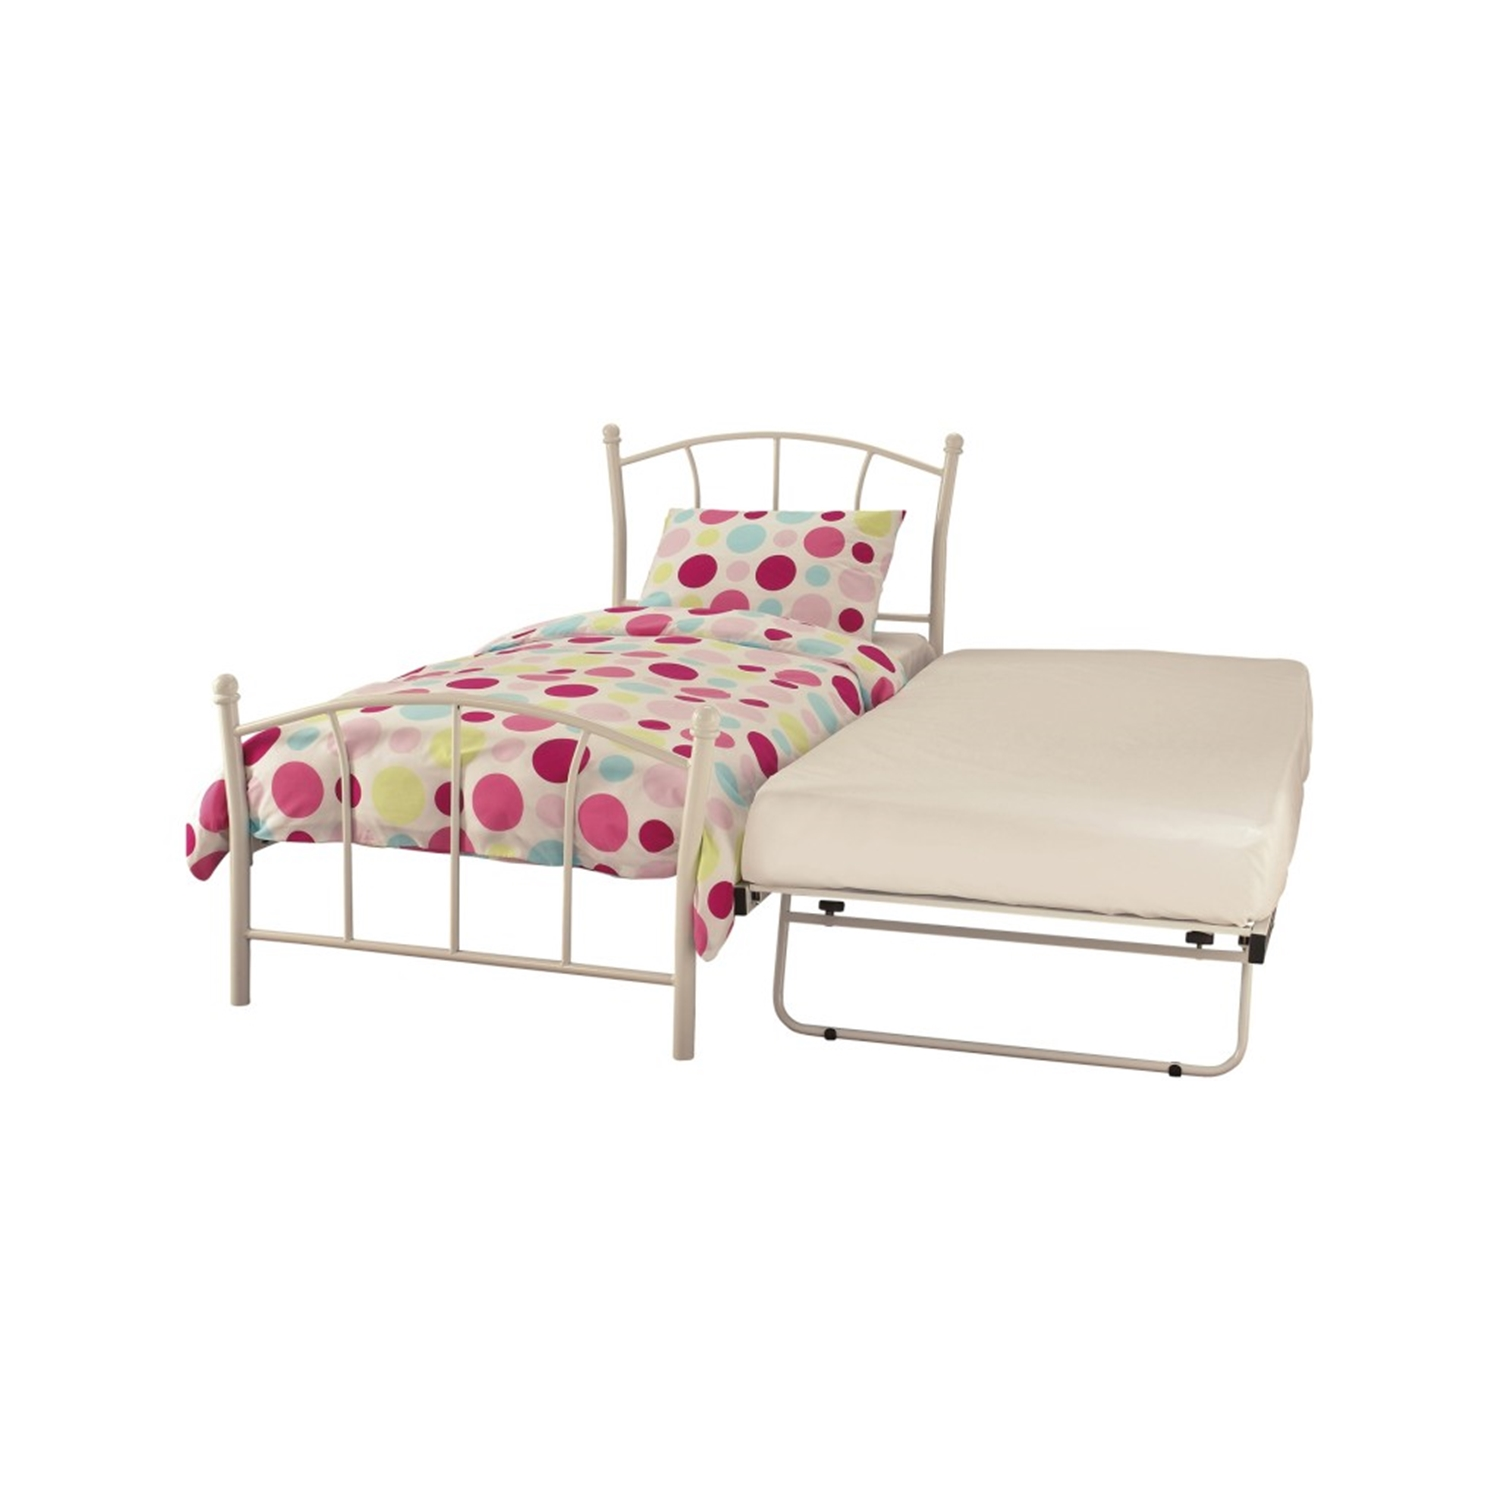 Image of Casa Penny Single Guest Bed